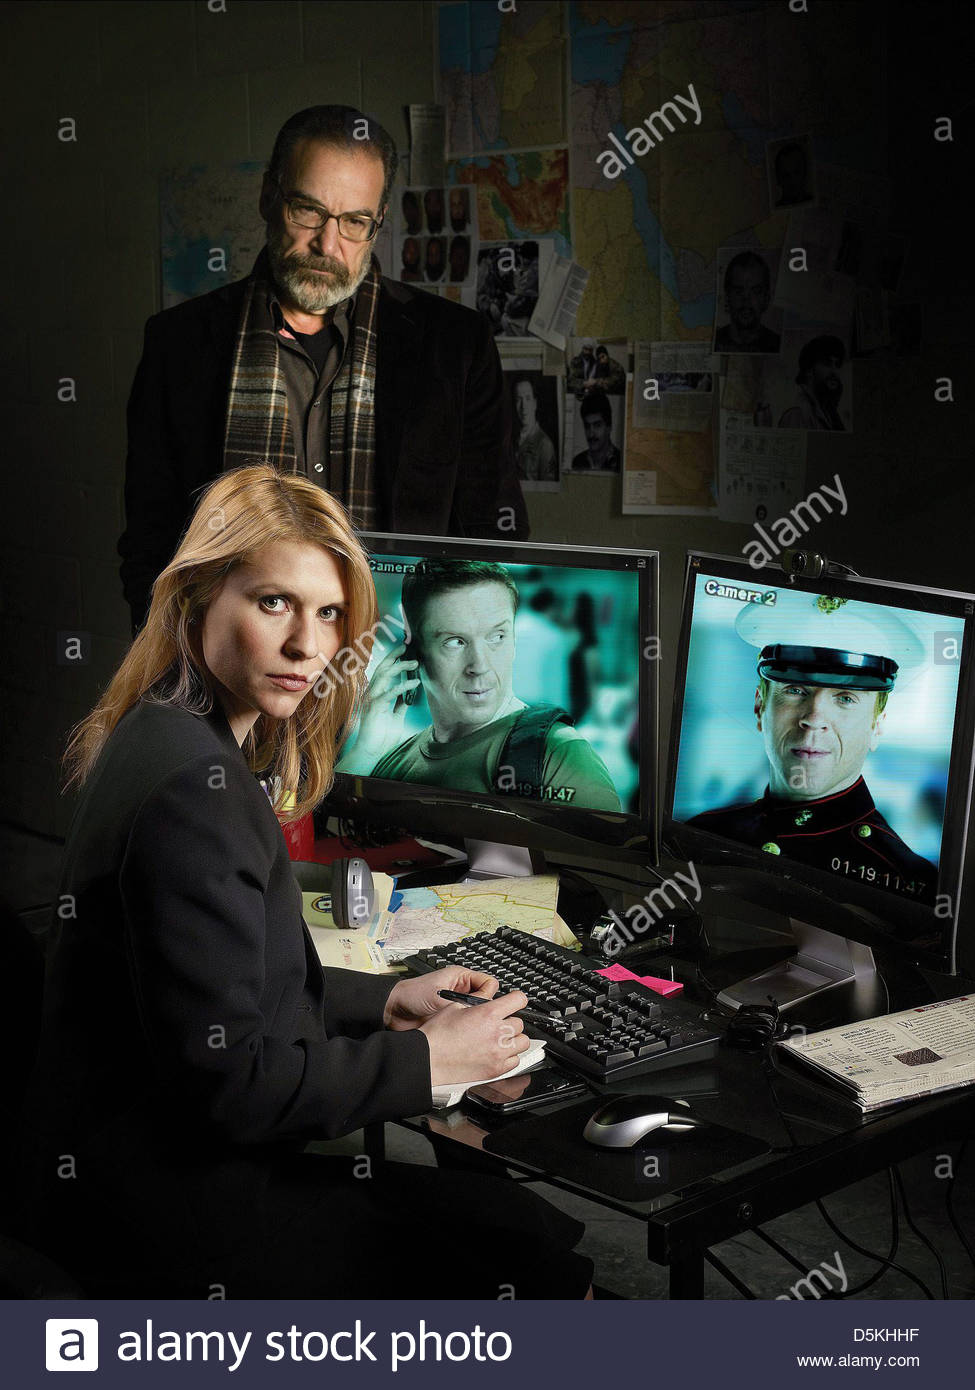 MANDY PATINKIN CLAIRE DANES & DAMIAN LEWIS HOMELAND (2011) - Stock Image